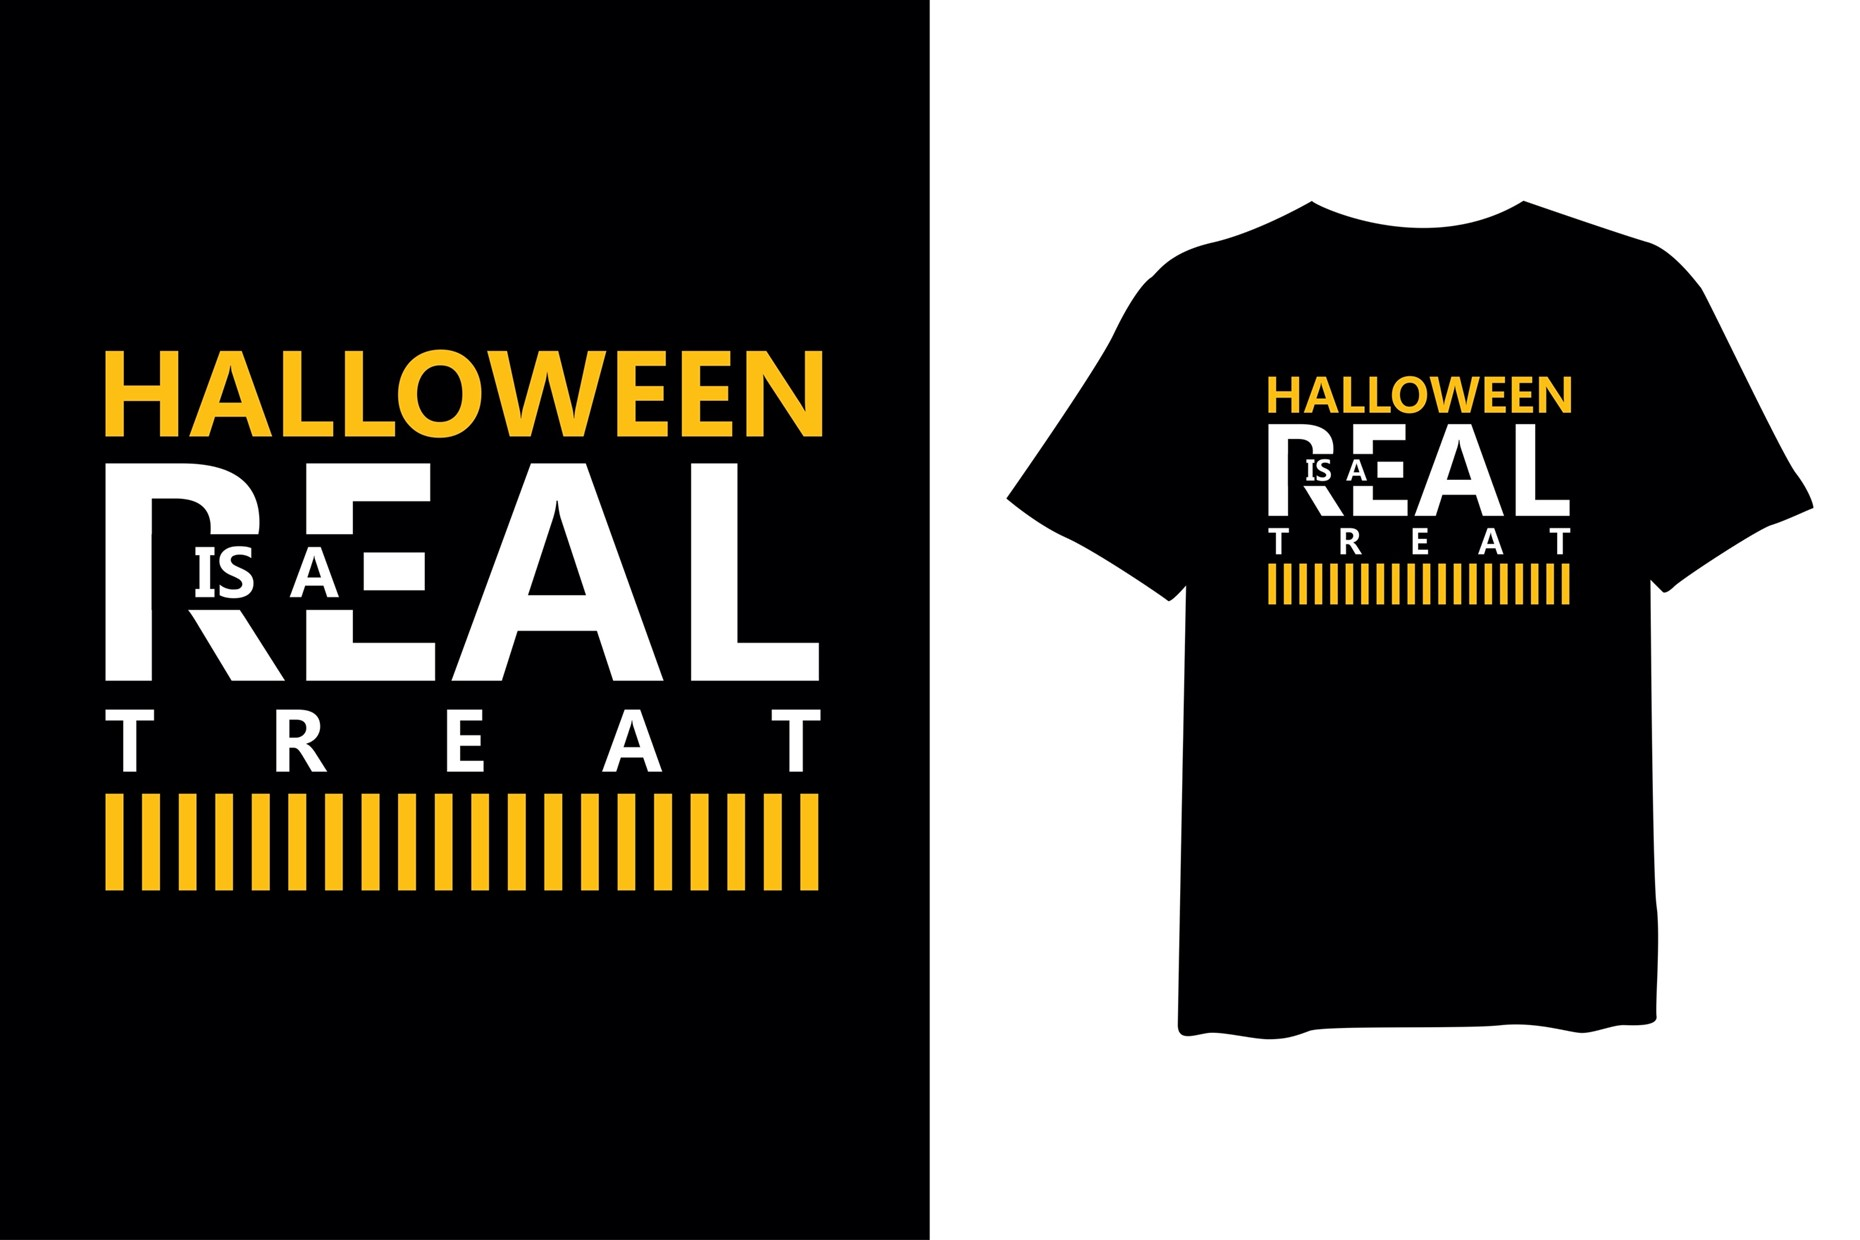 personalised t-shirt printing with Halloween